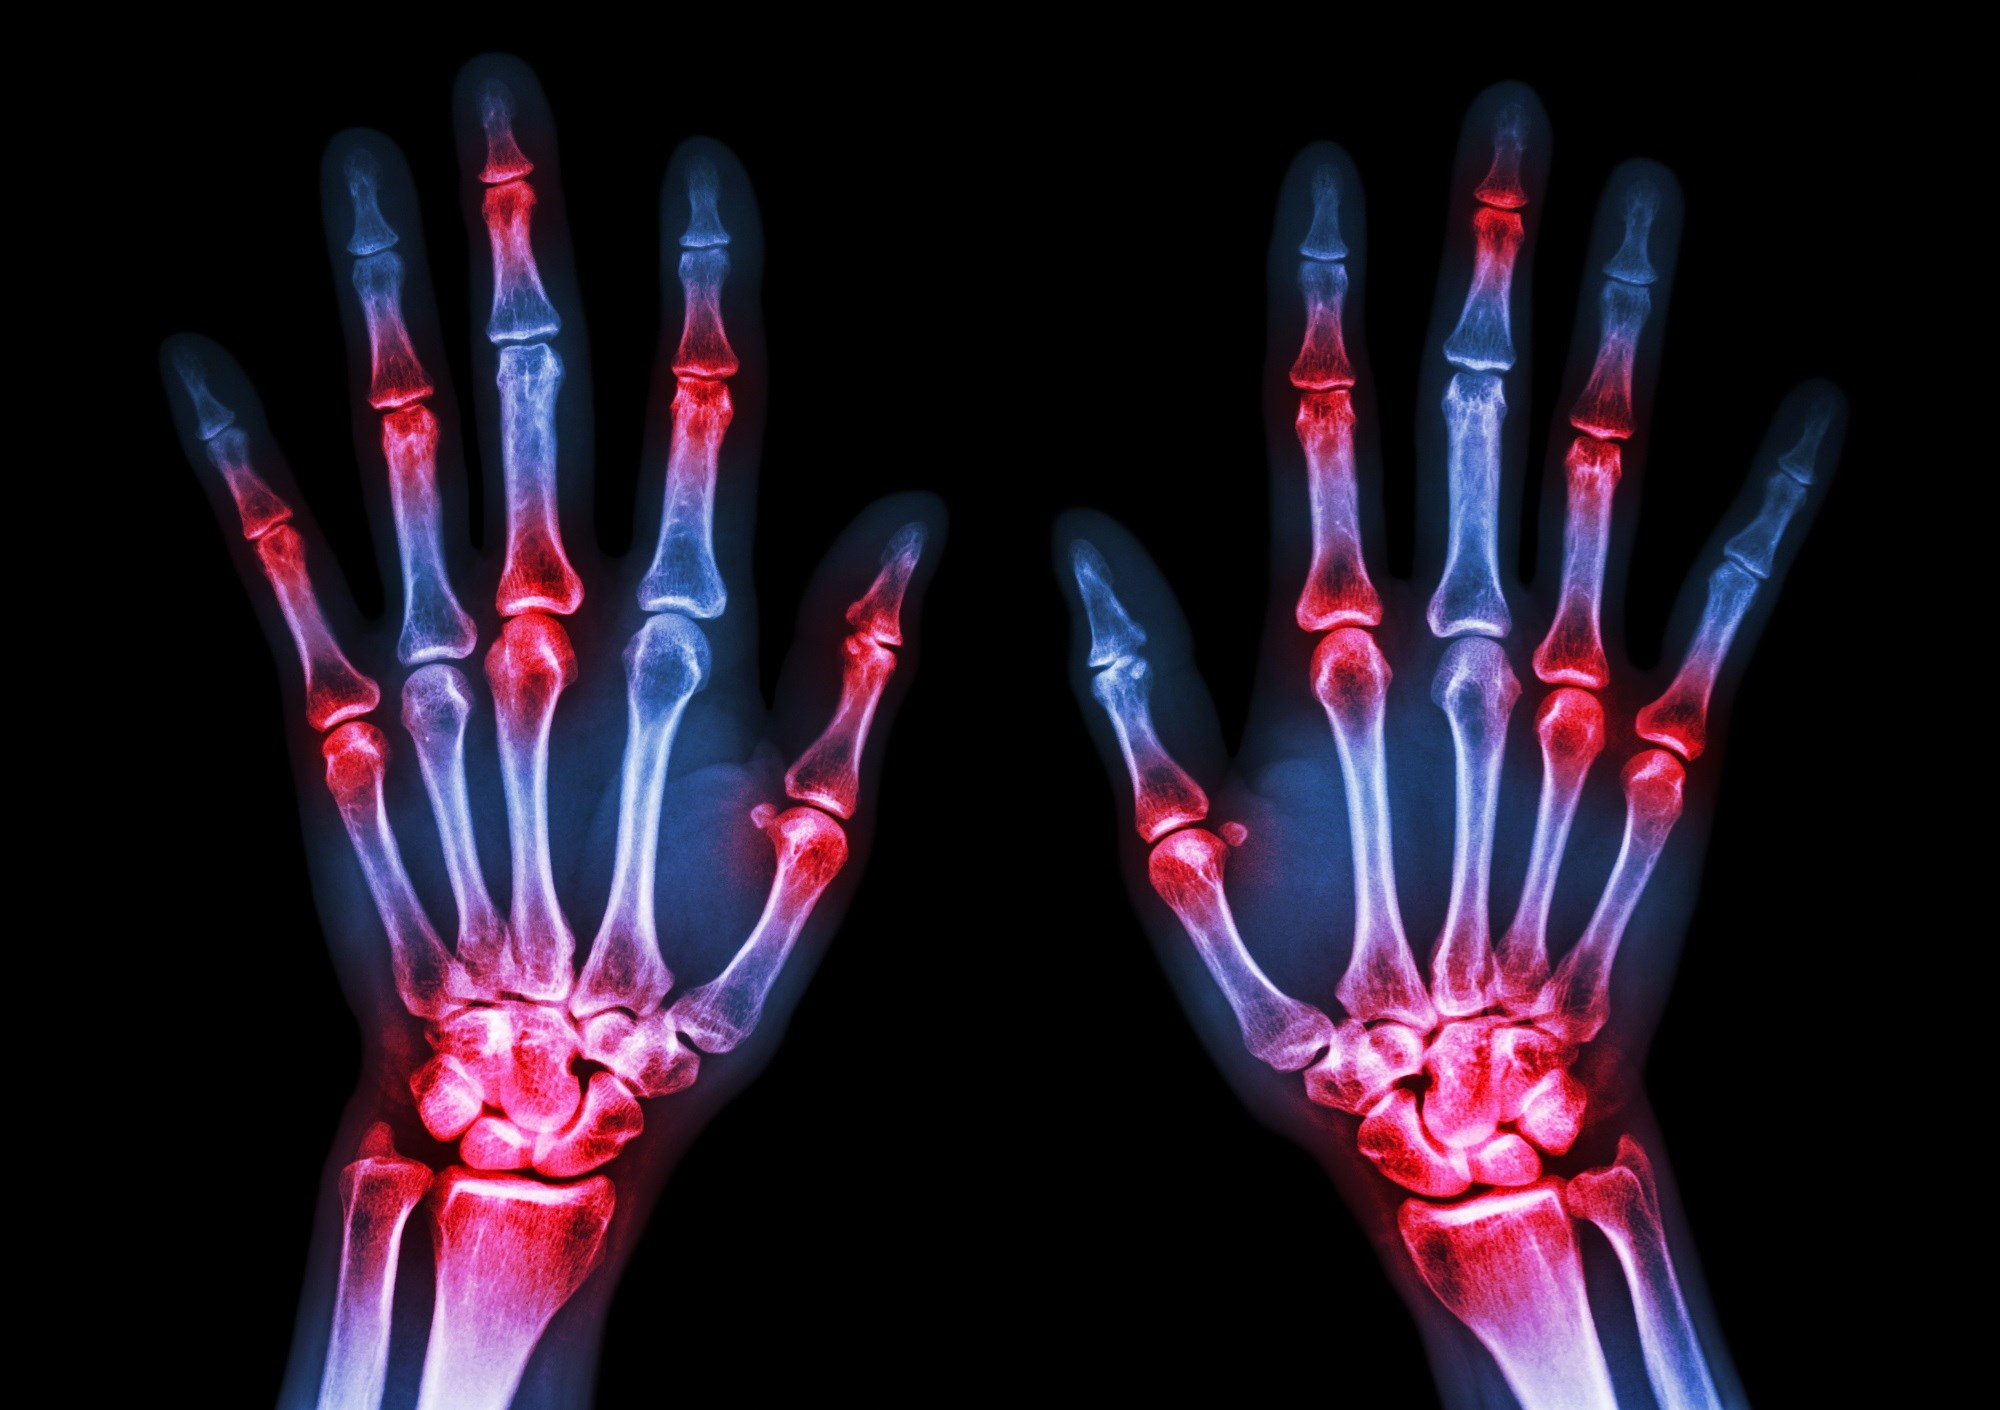 Novel JAK Inhibitor Peficitinib Effective, Tolerable in Treating Rheumatoid Arthritis